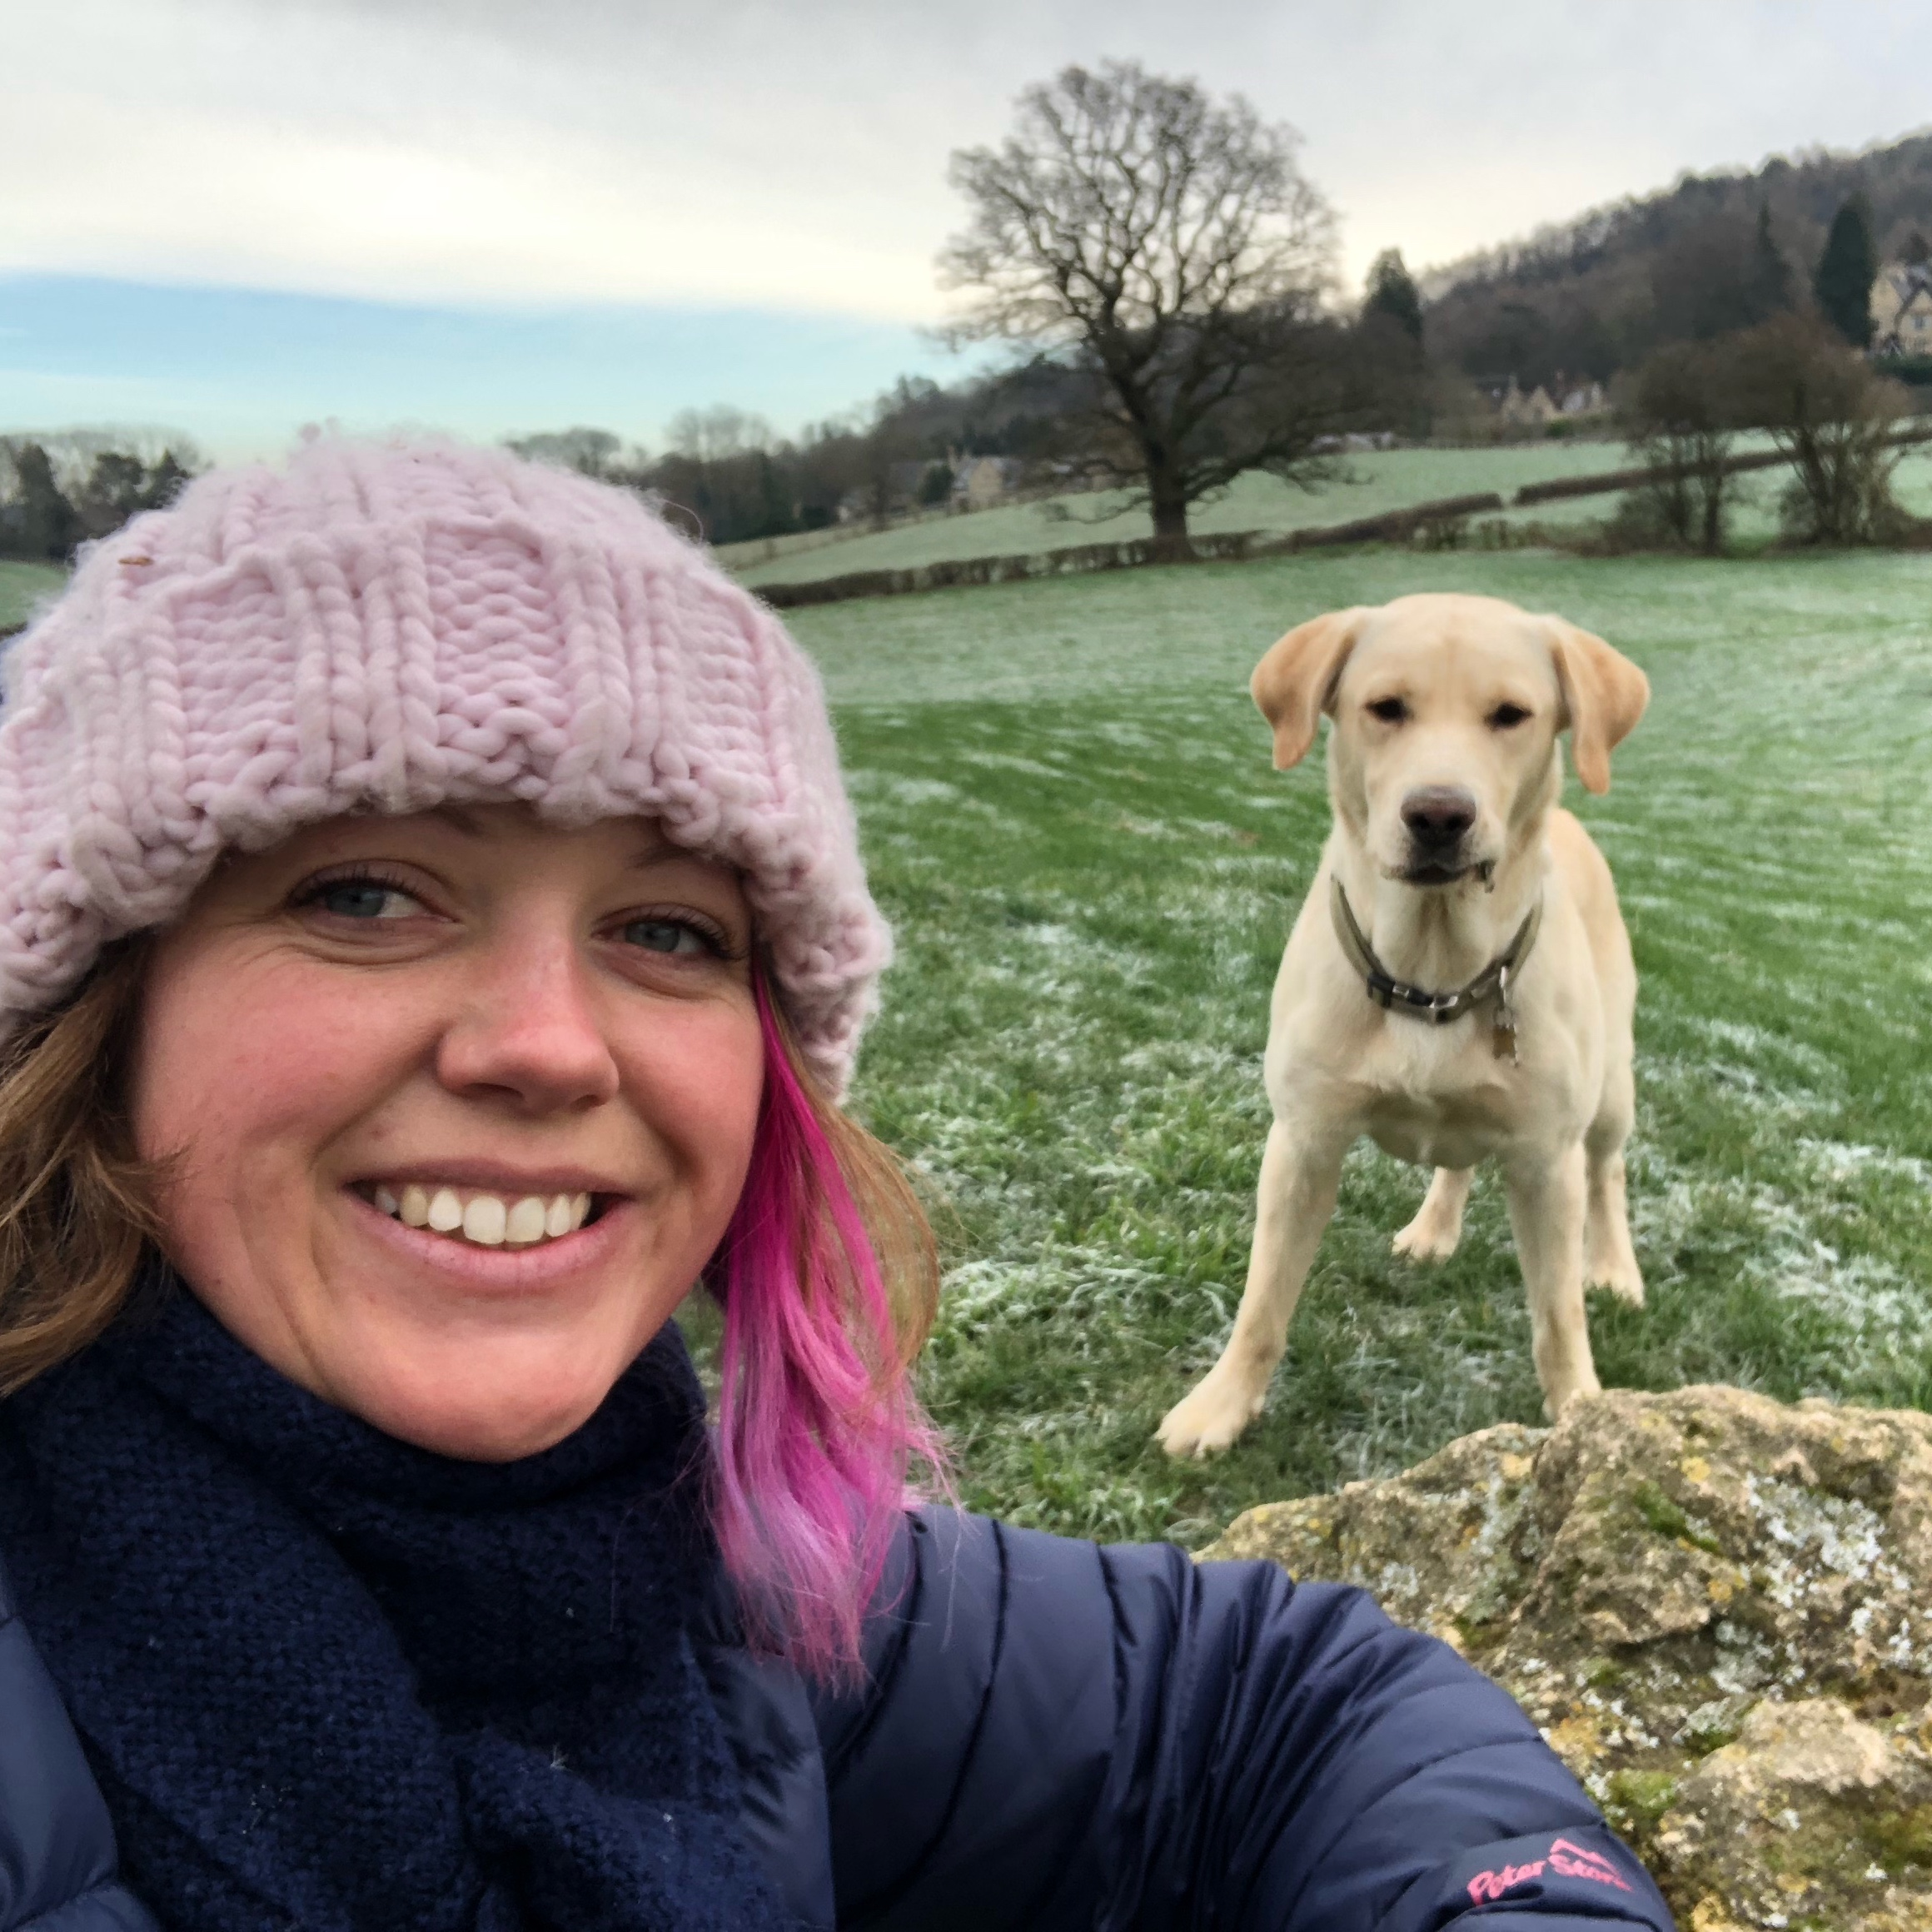 Me, in the close foreground and Hendrix our labrador standing behind me on a frosty walk in the countryside.